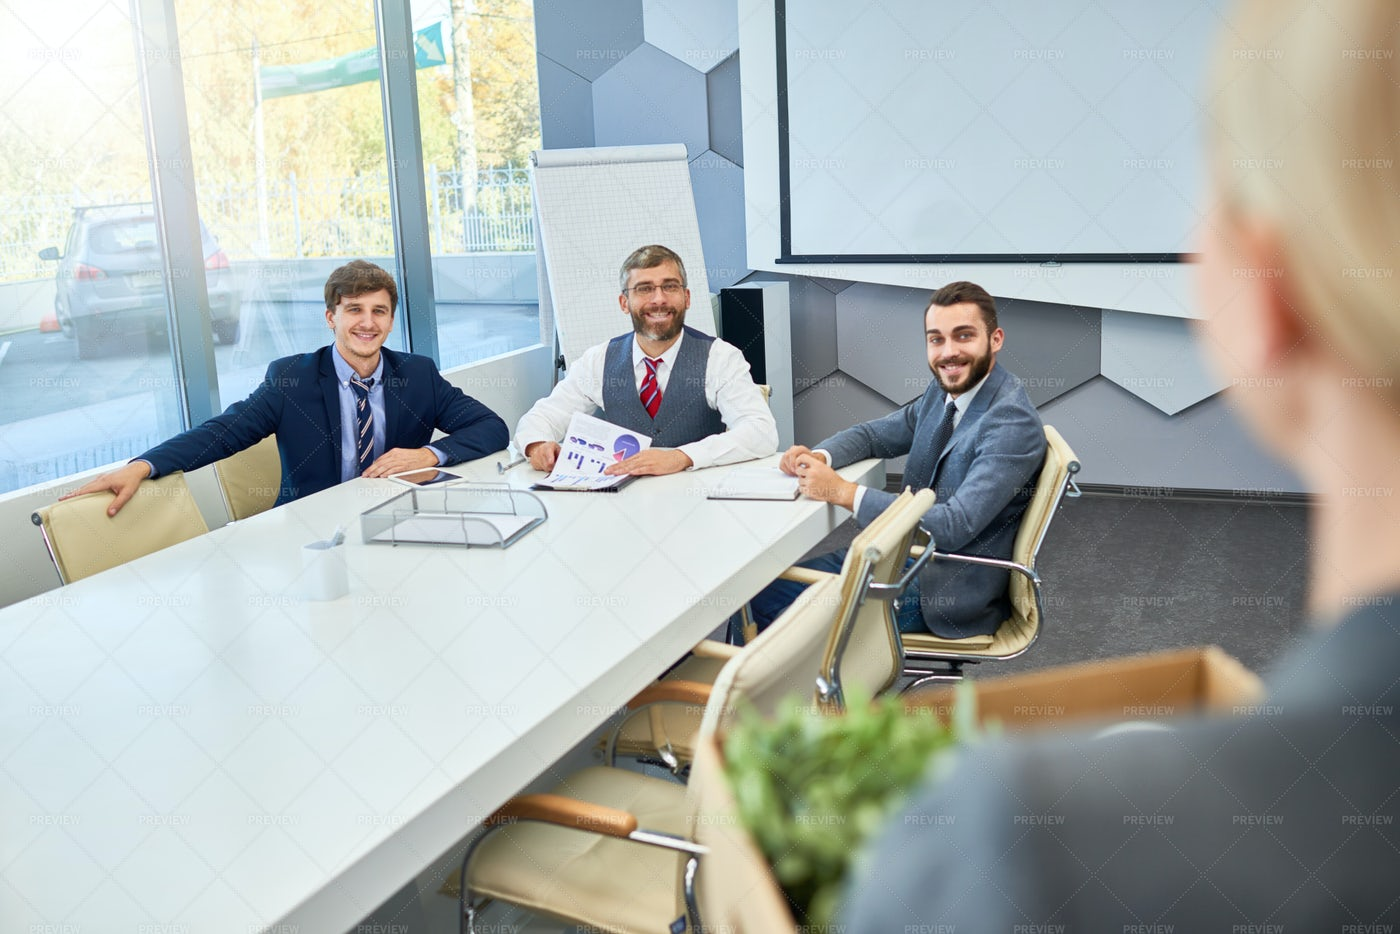 Job Interview In Business Company: Stock Photos